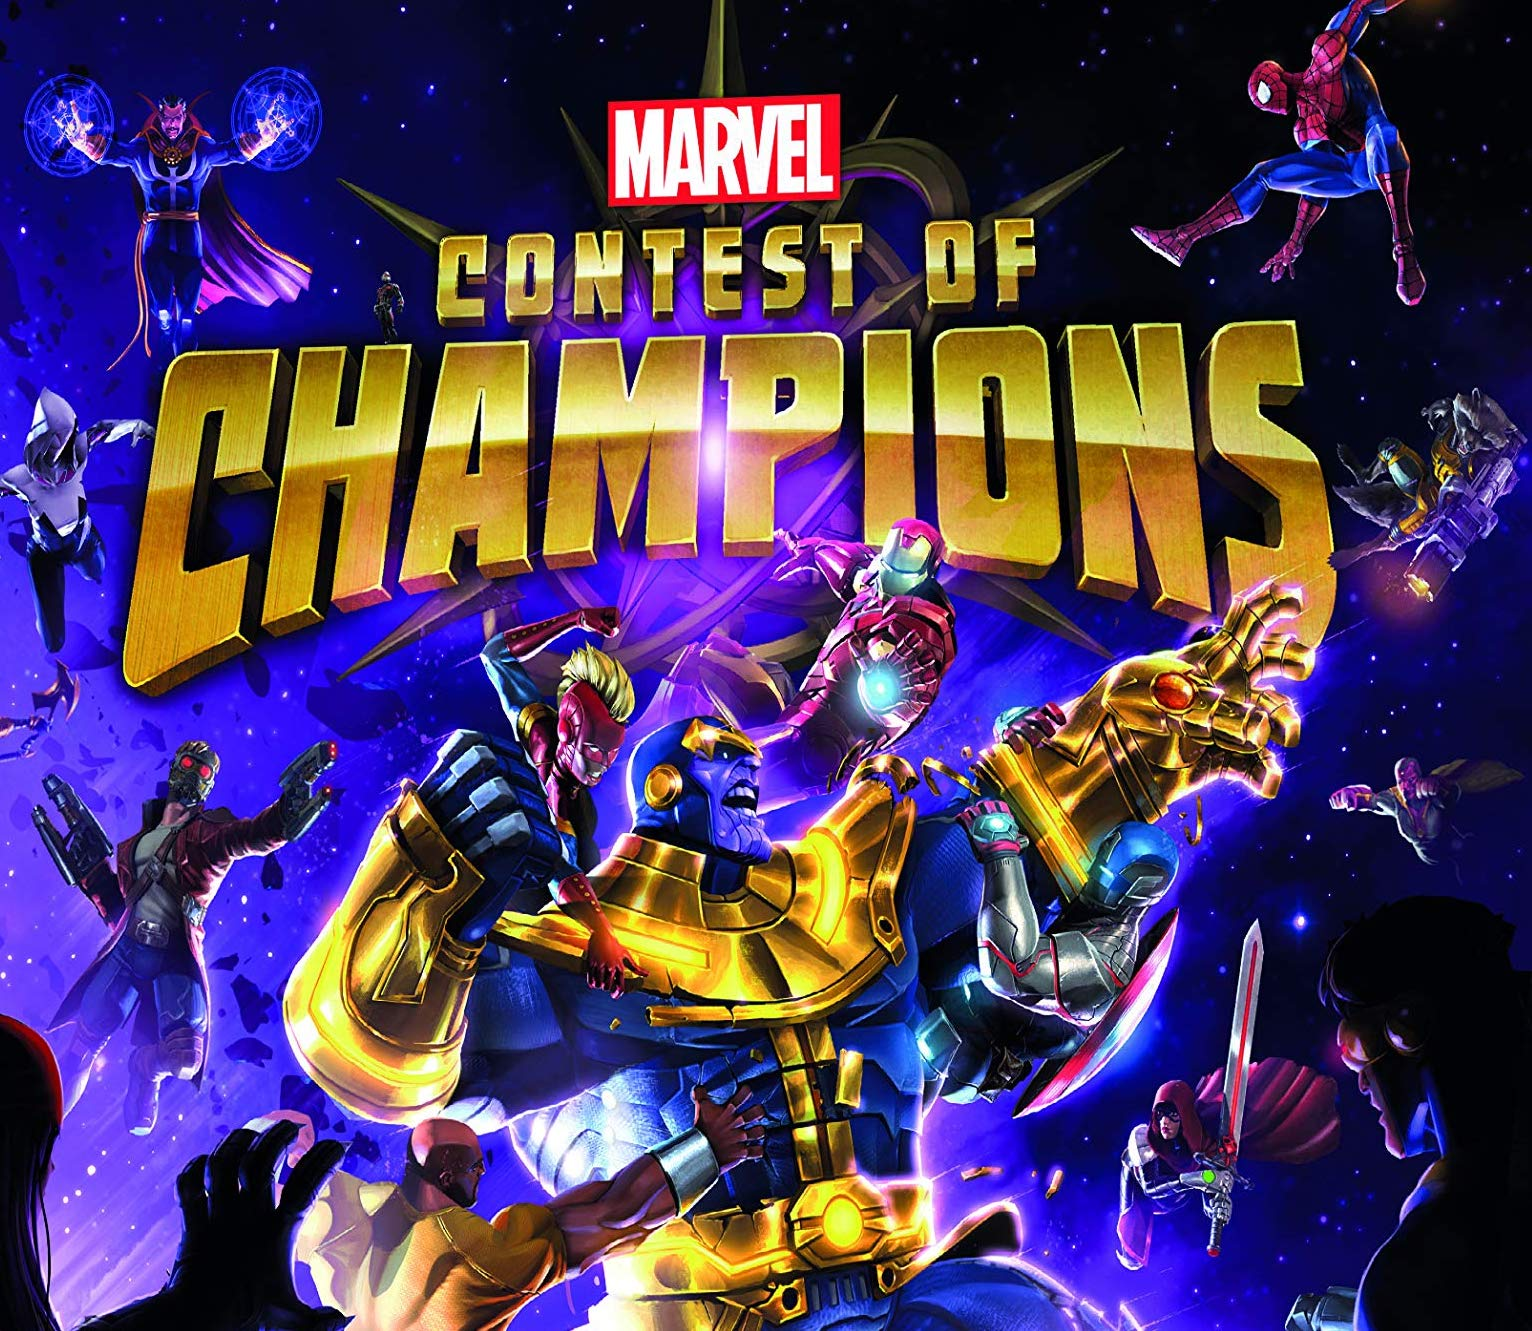 Marvel Contest of Champions: The Art of the Battlerealm Review